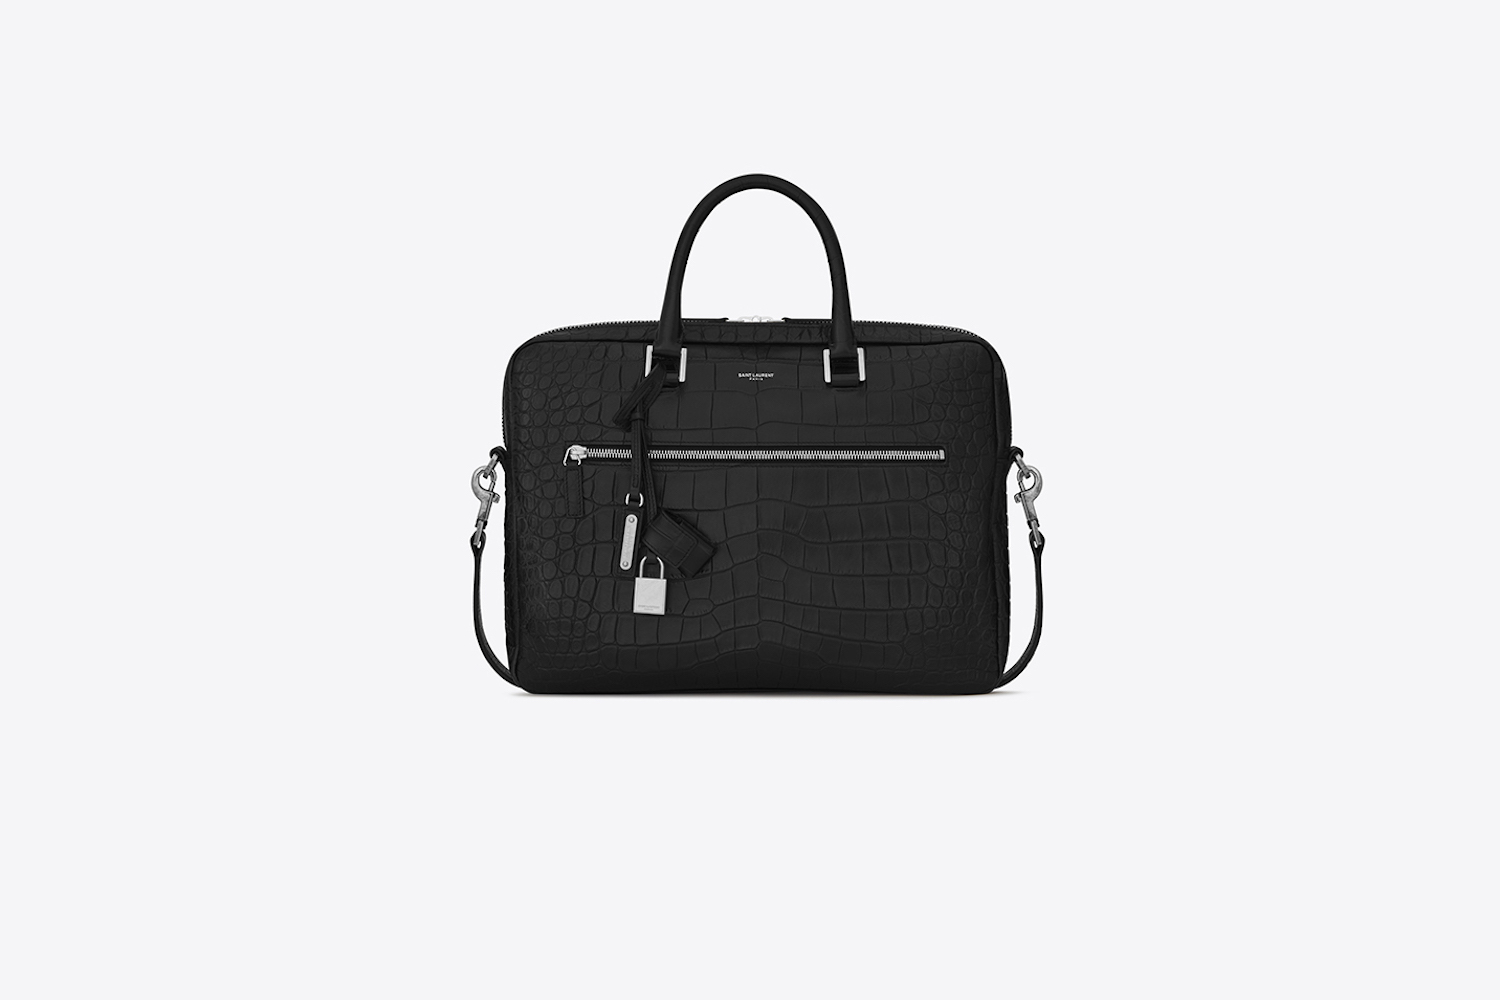 fc772466861 After the beautiful and modern Rivington Backpack, Saint Laurent has  decided to reveal a series of new bags, part of the Winter 2017 collection.